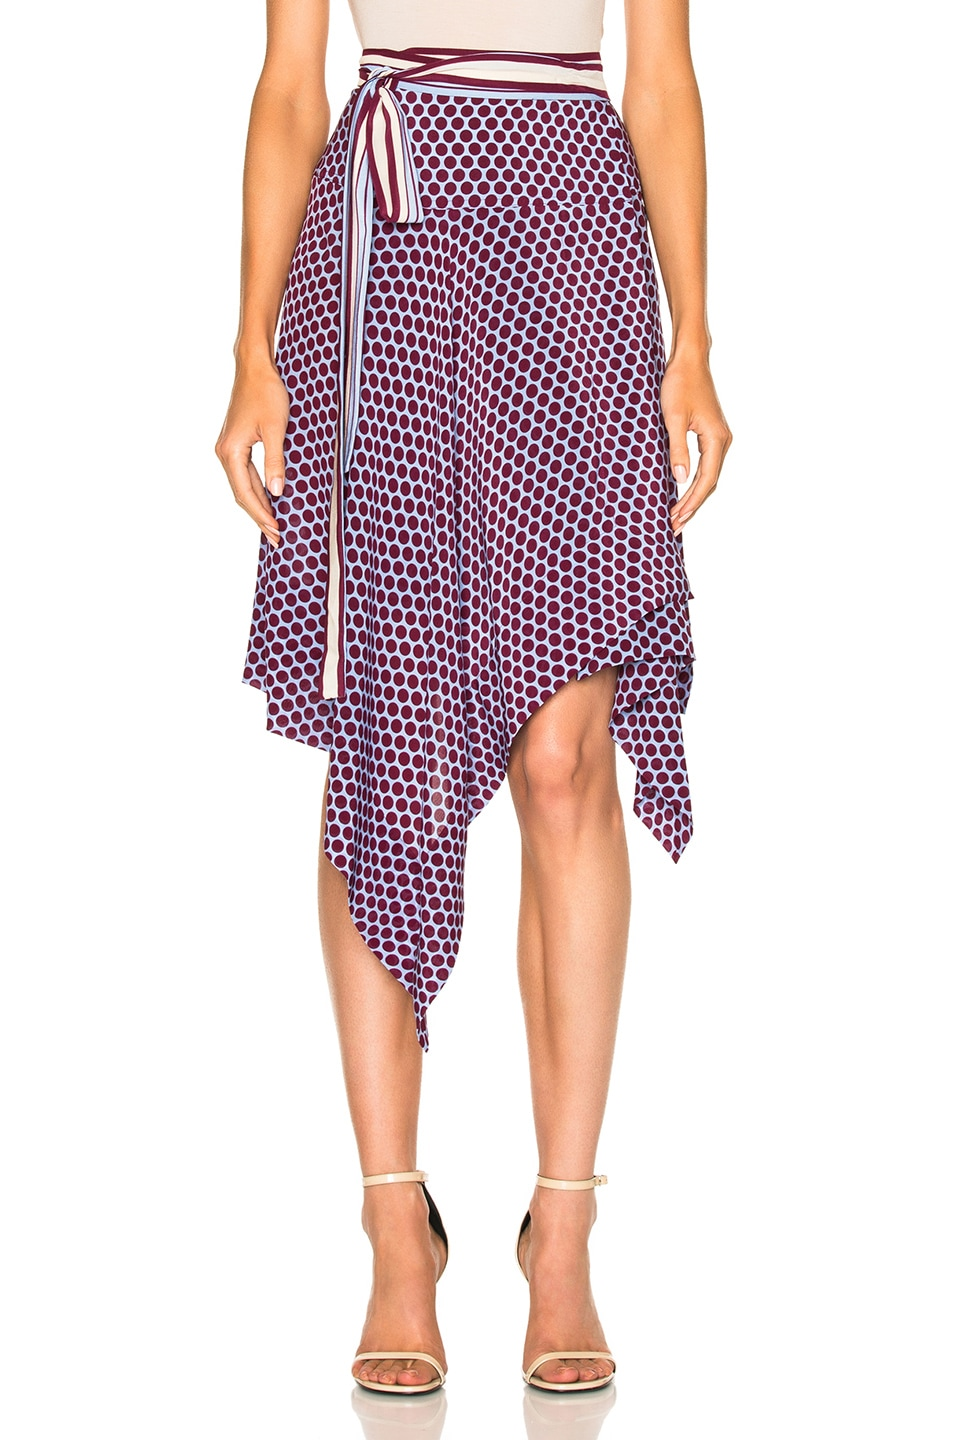 Image 1 of Alexis Danica Wrap Skirt in Purple Blue Polka Dot